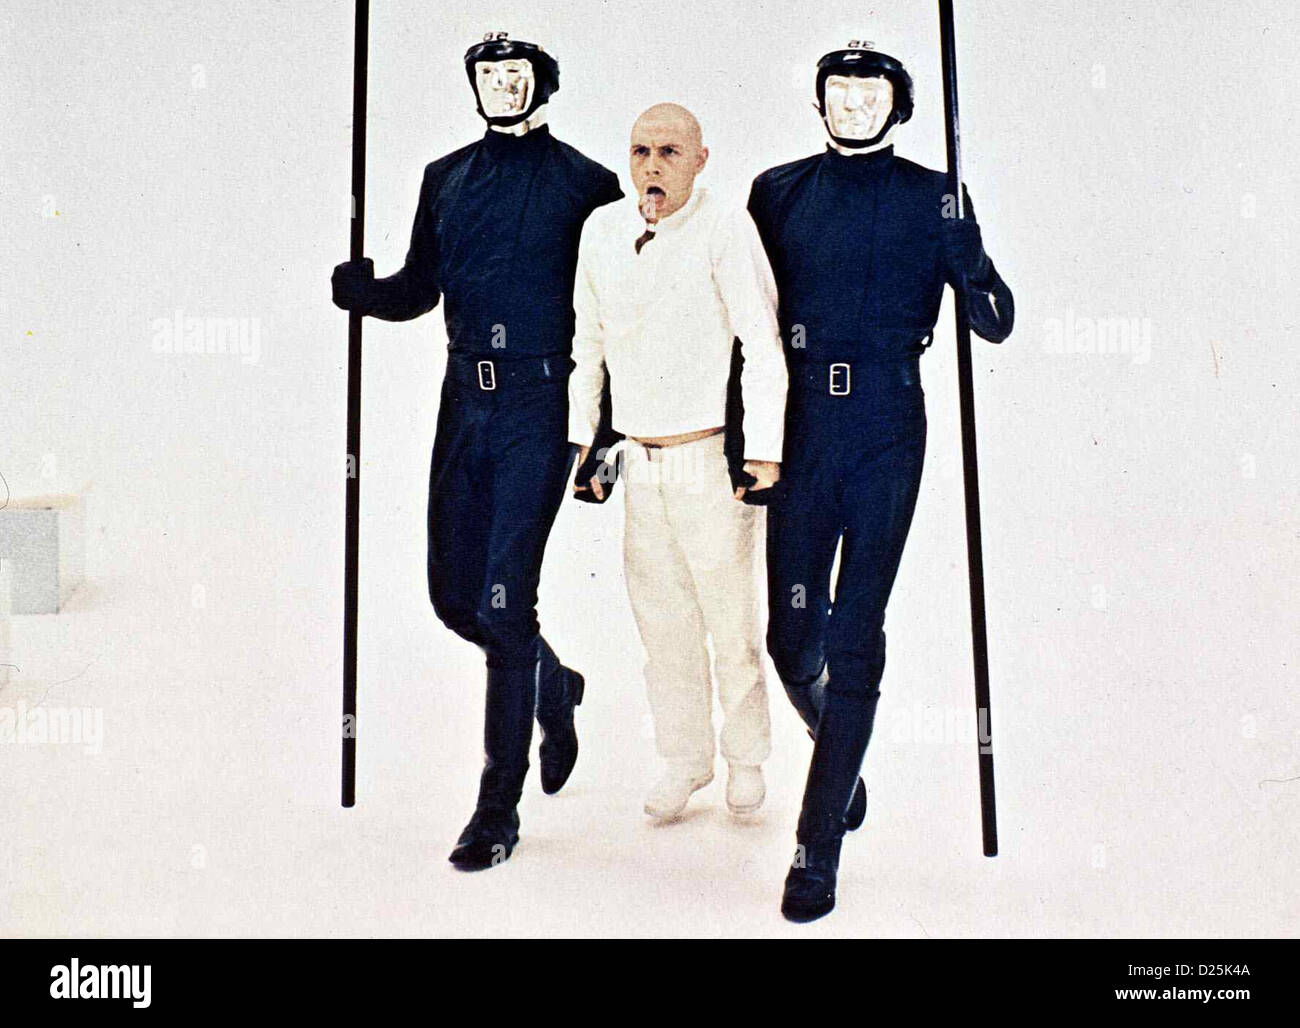 Image result for images of thx 1138